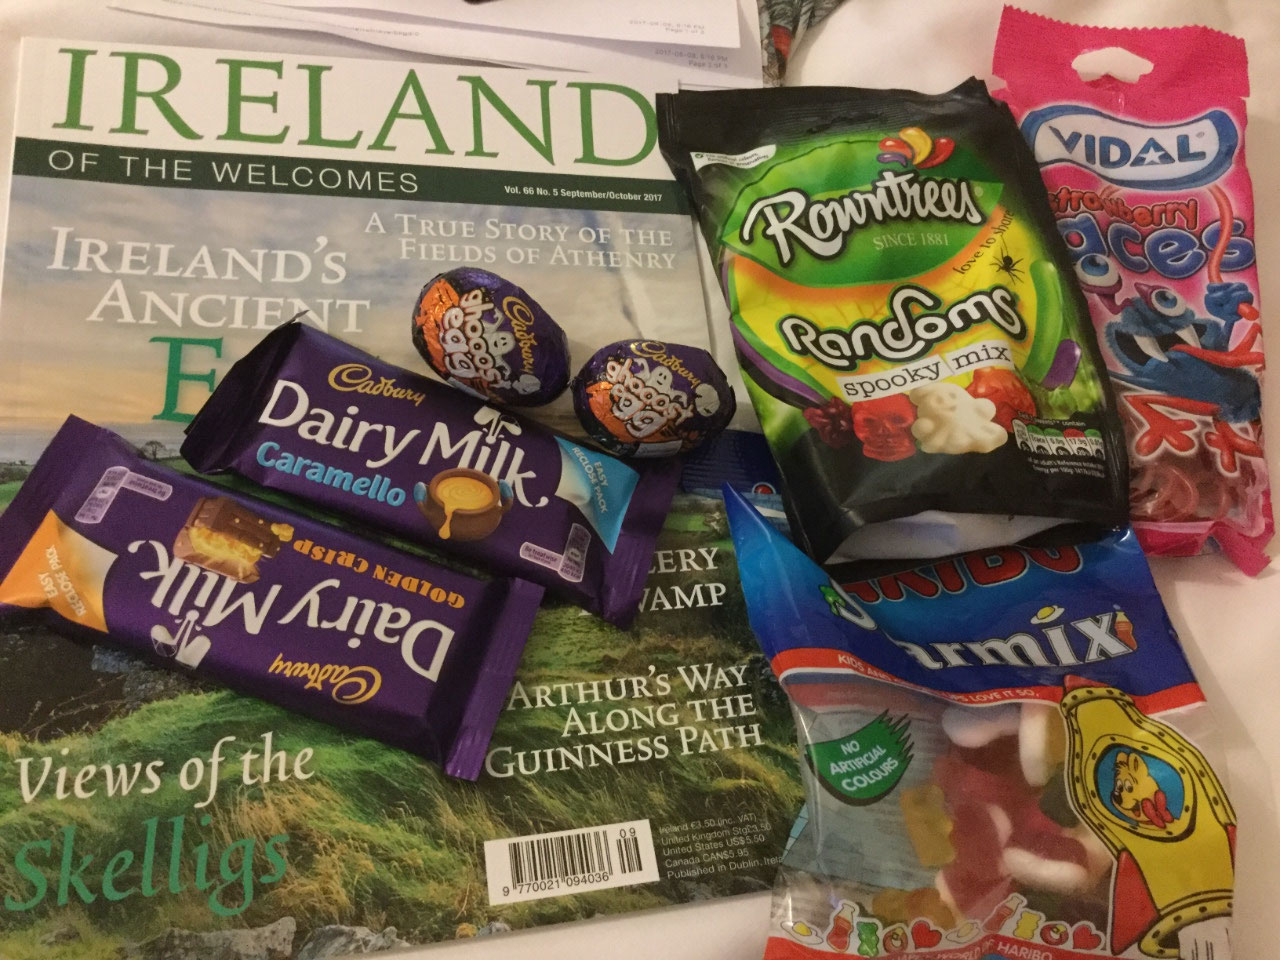 Reading material and treats from the airport shops